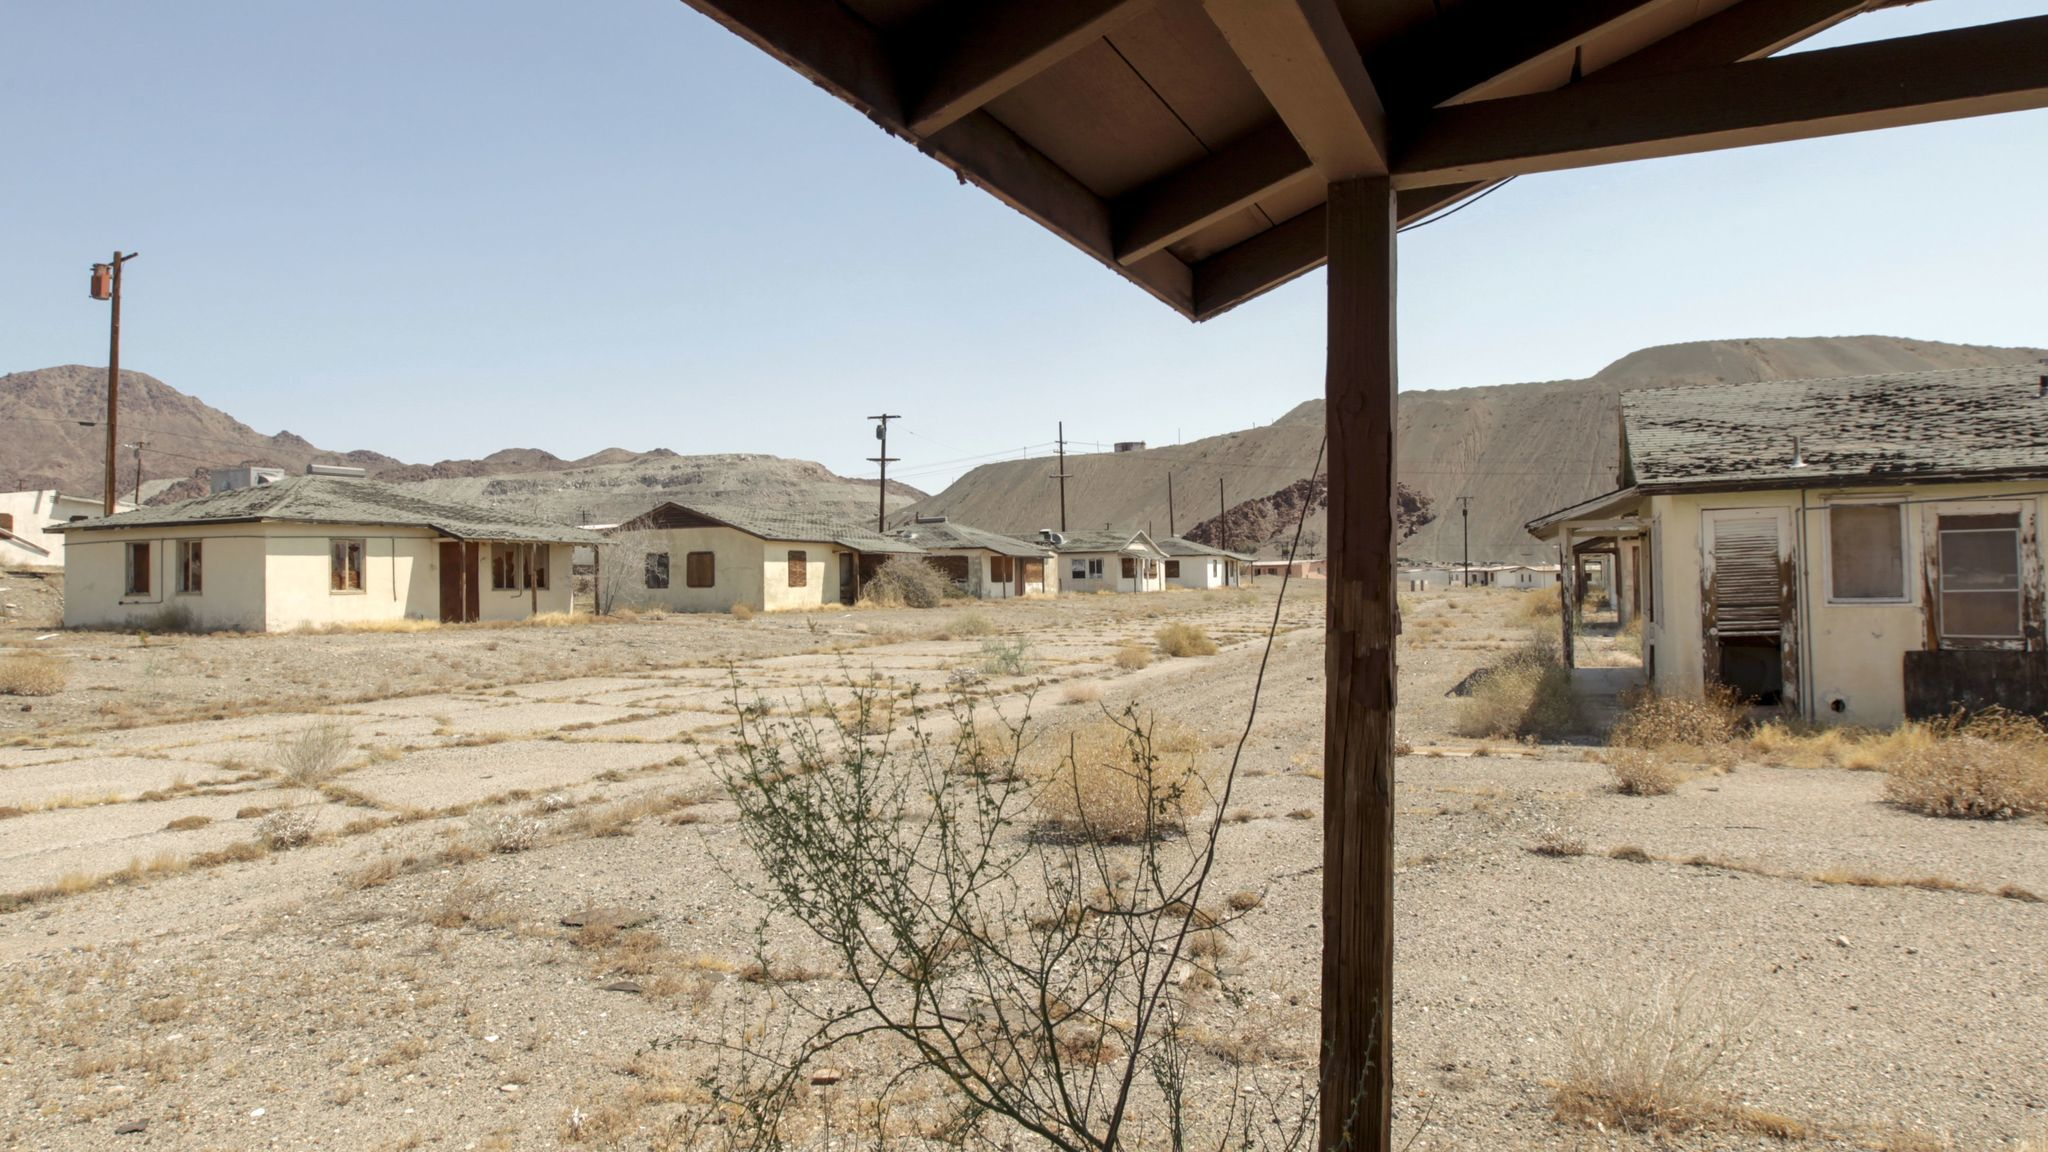 Weed-filled streets and boarded-up houses are all that is left of the company town.